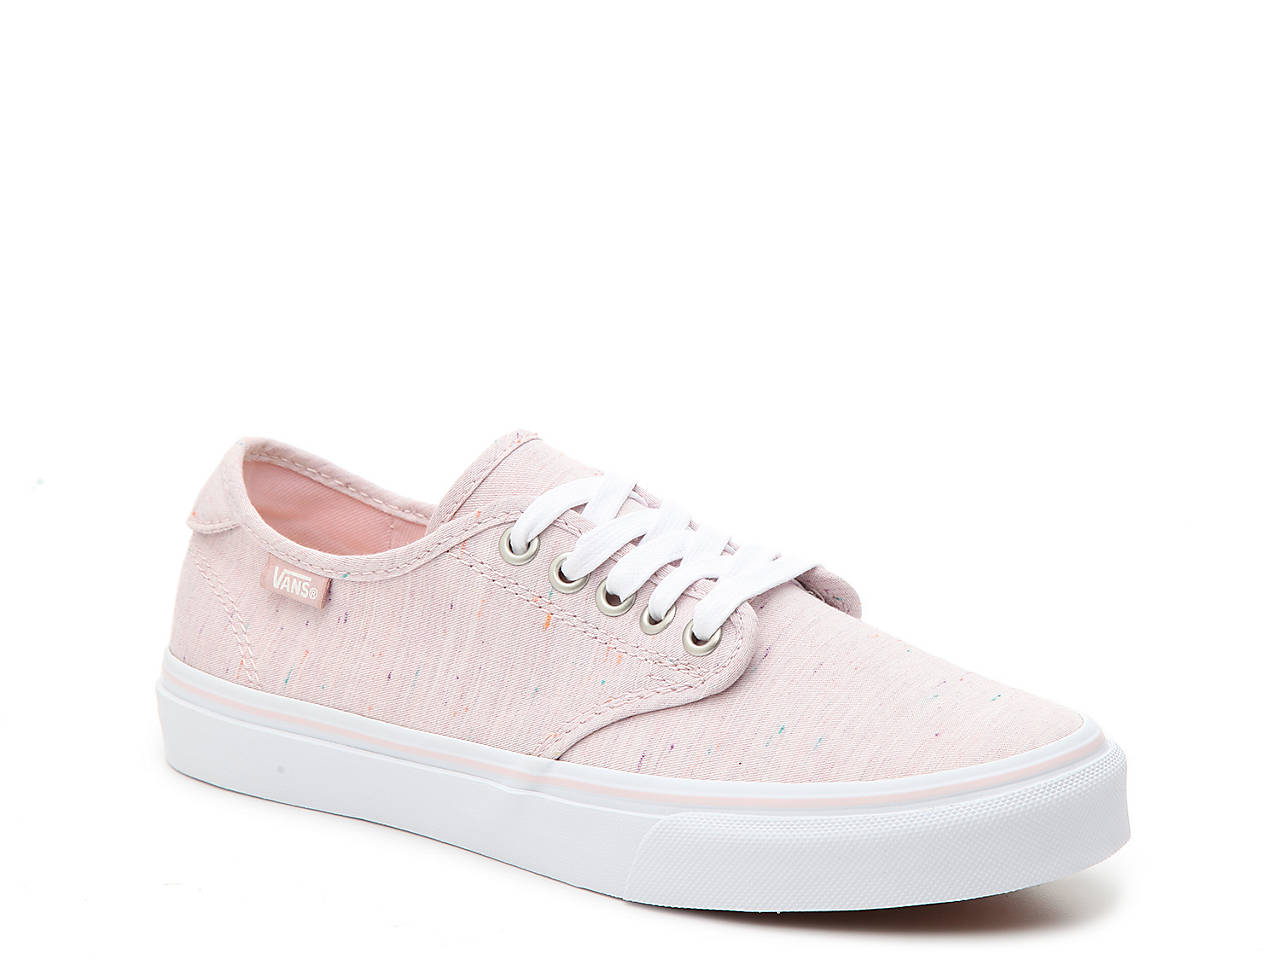 7861455170 Vans Camden Deluxe Sneaker - Women s Men s Shoes